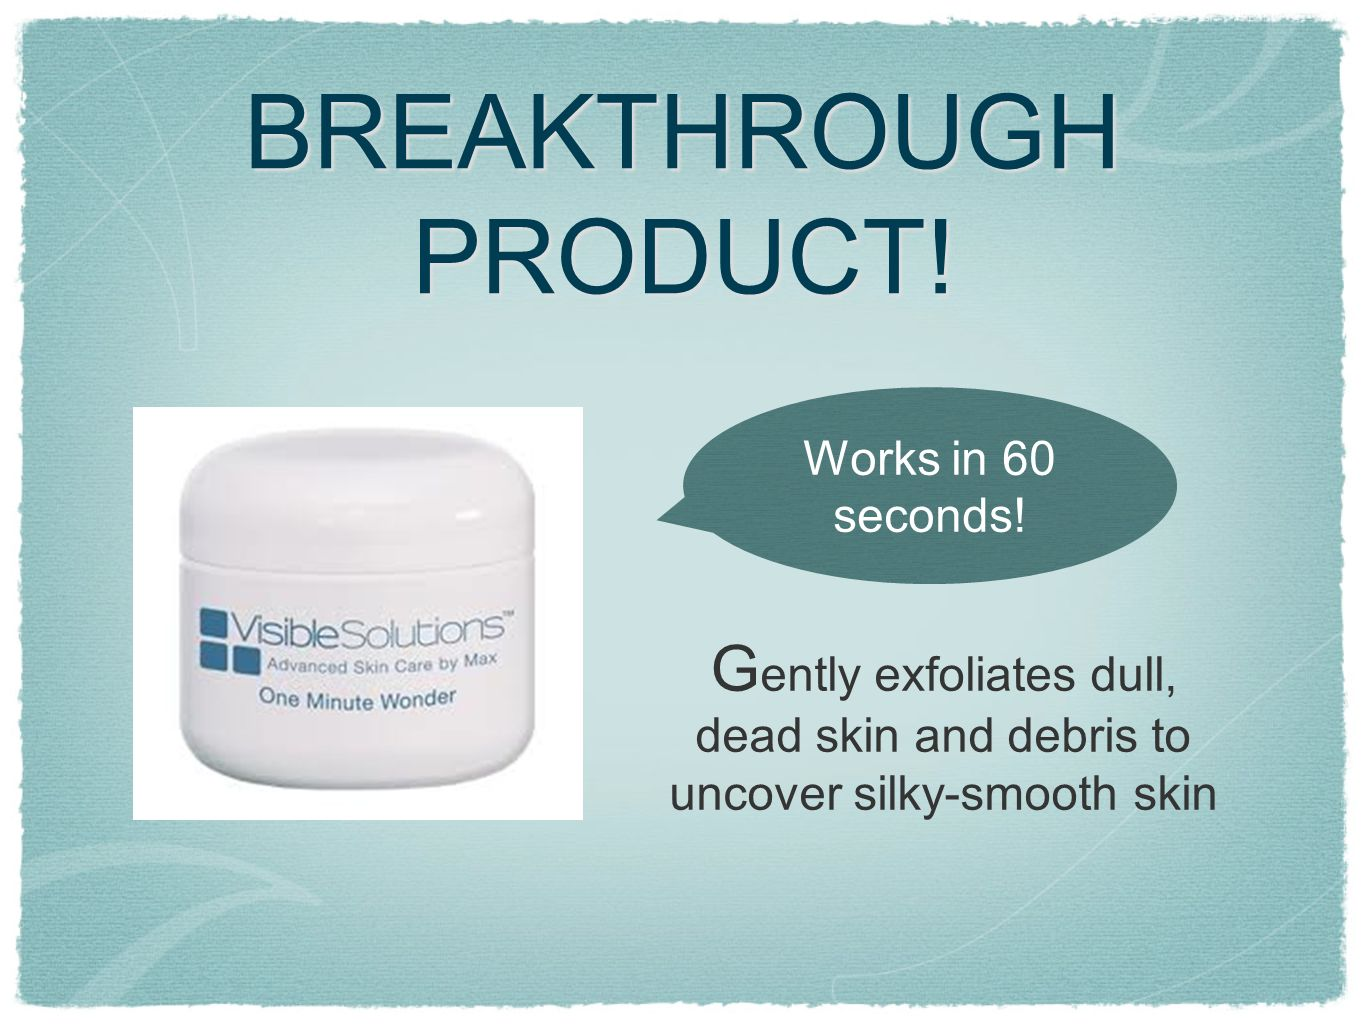 BREAKTHROUGH PRODUCT. Works in 60 seconds.